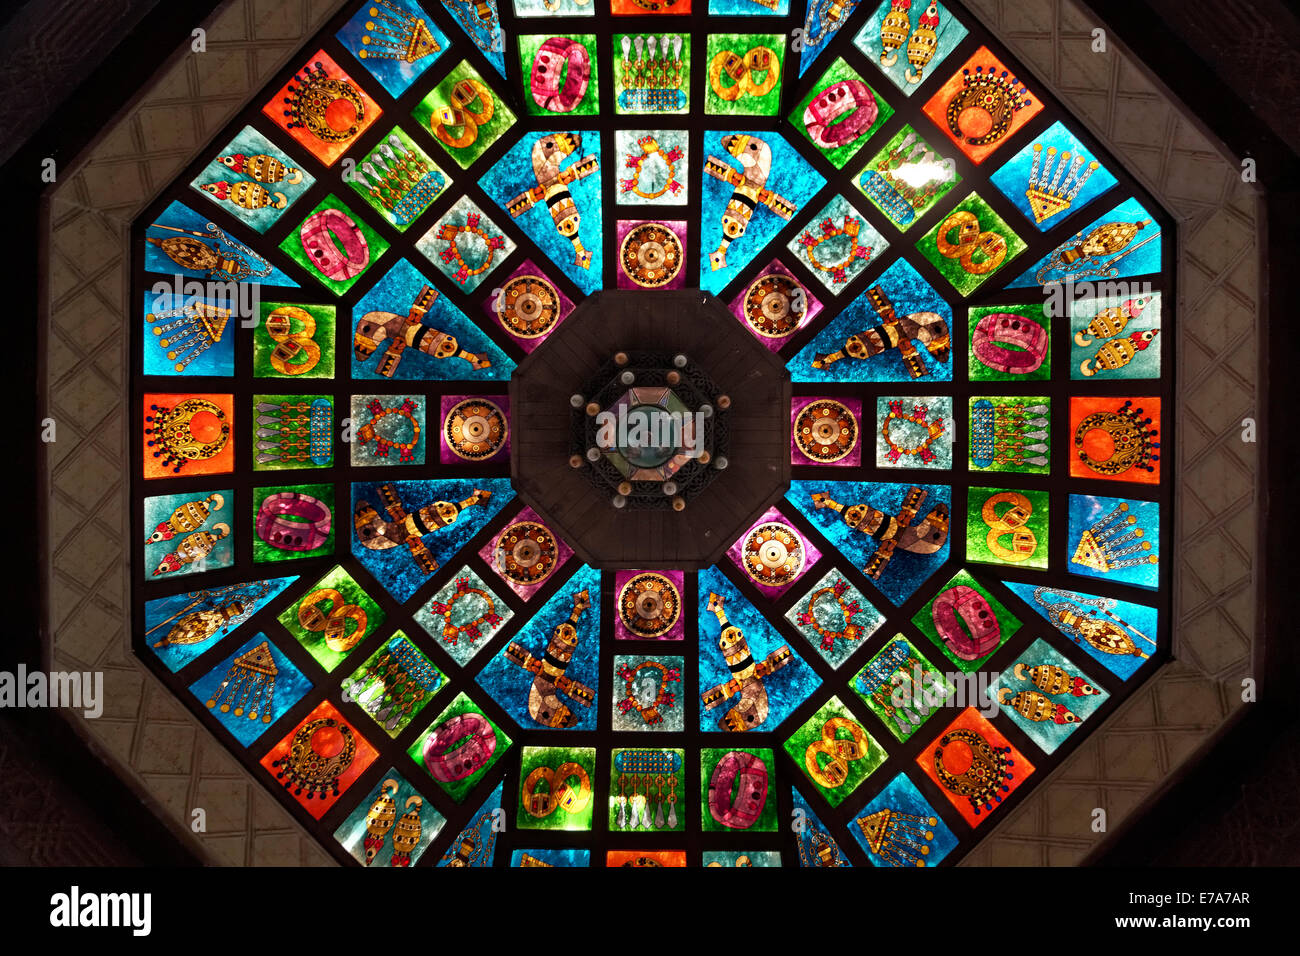 Glass dome, ornate stained glass skylight in the Muttrah Souq market, Muttrah, Muscat, Oman - Stock Image